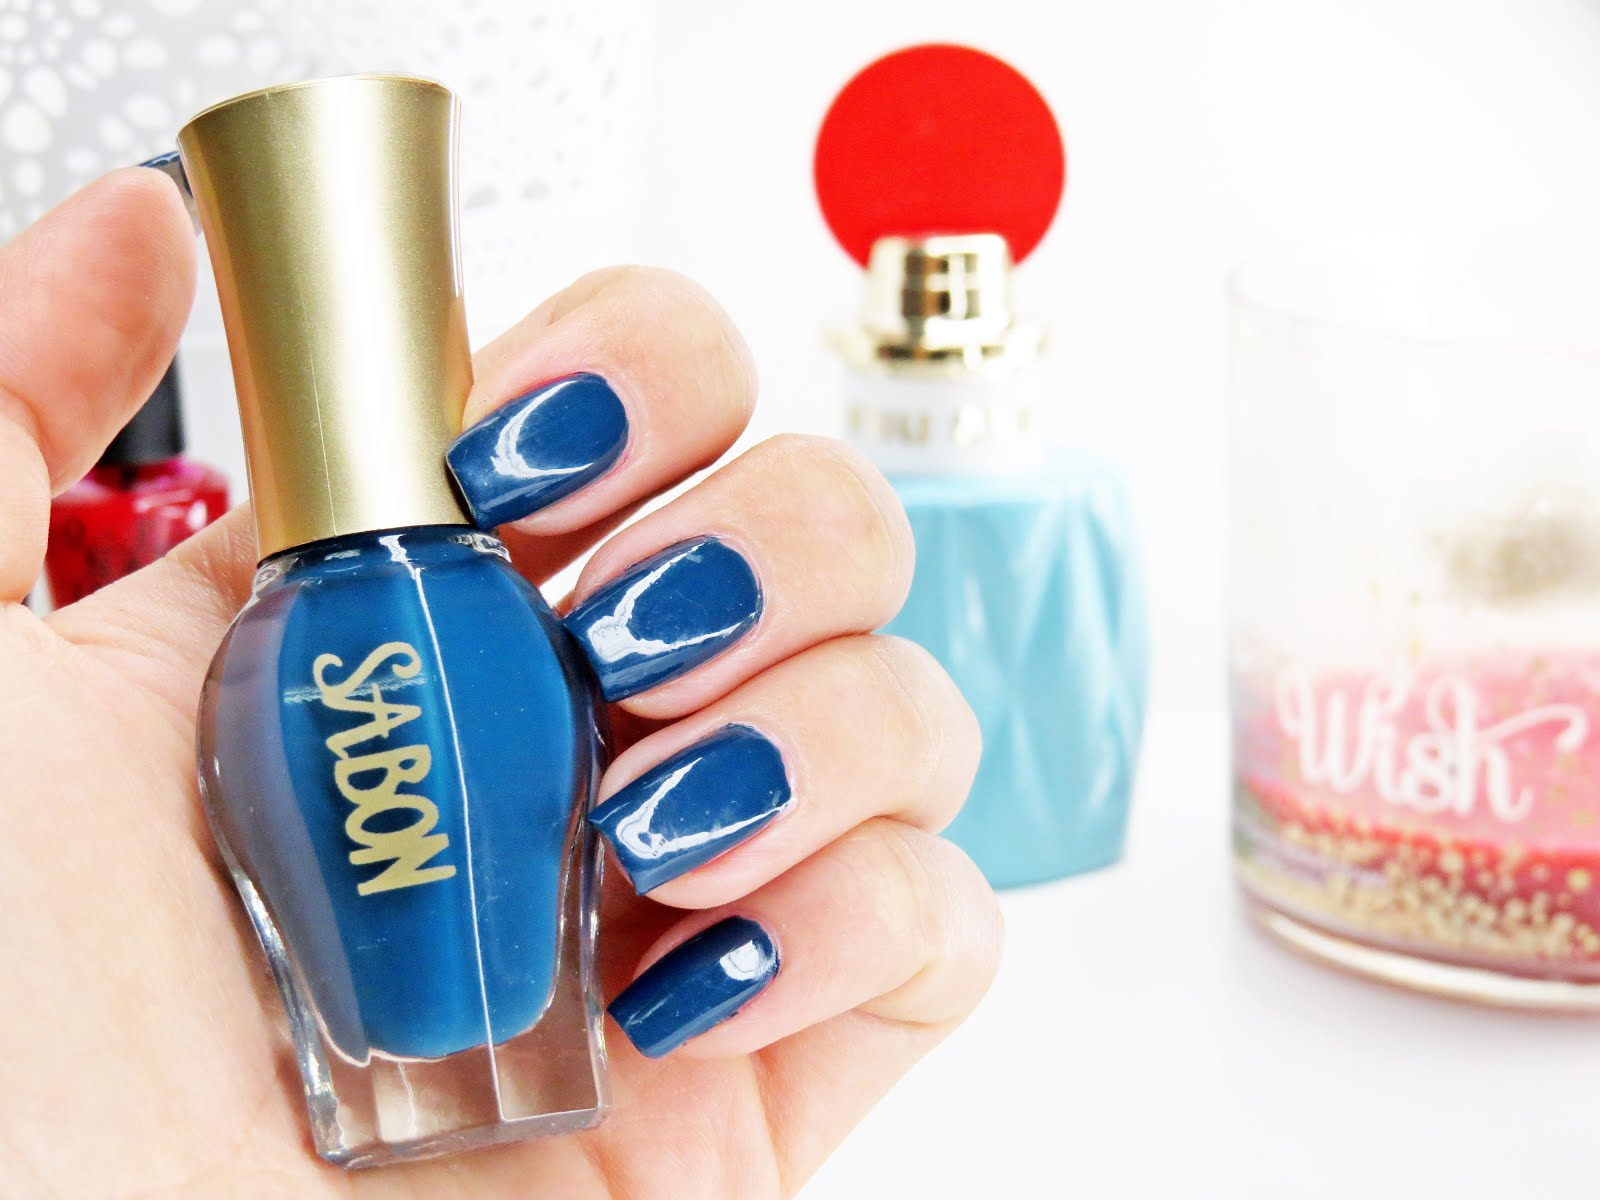 The Nail Polish Of The Week